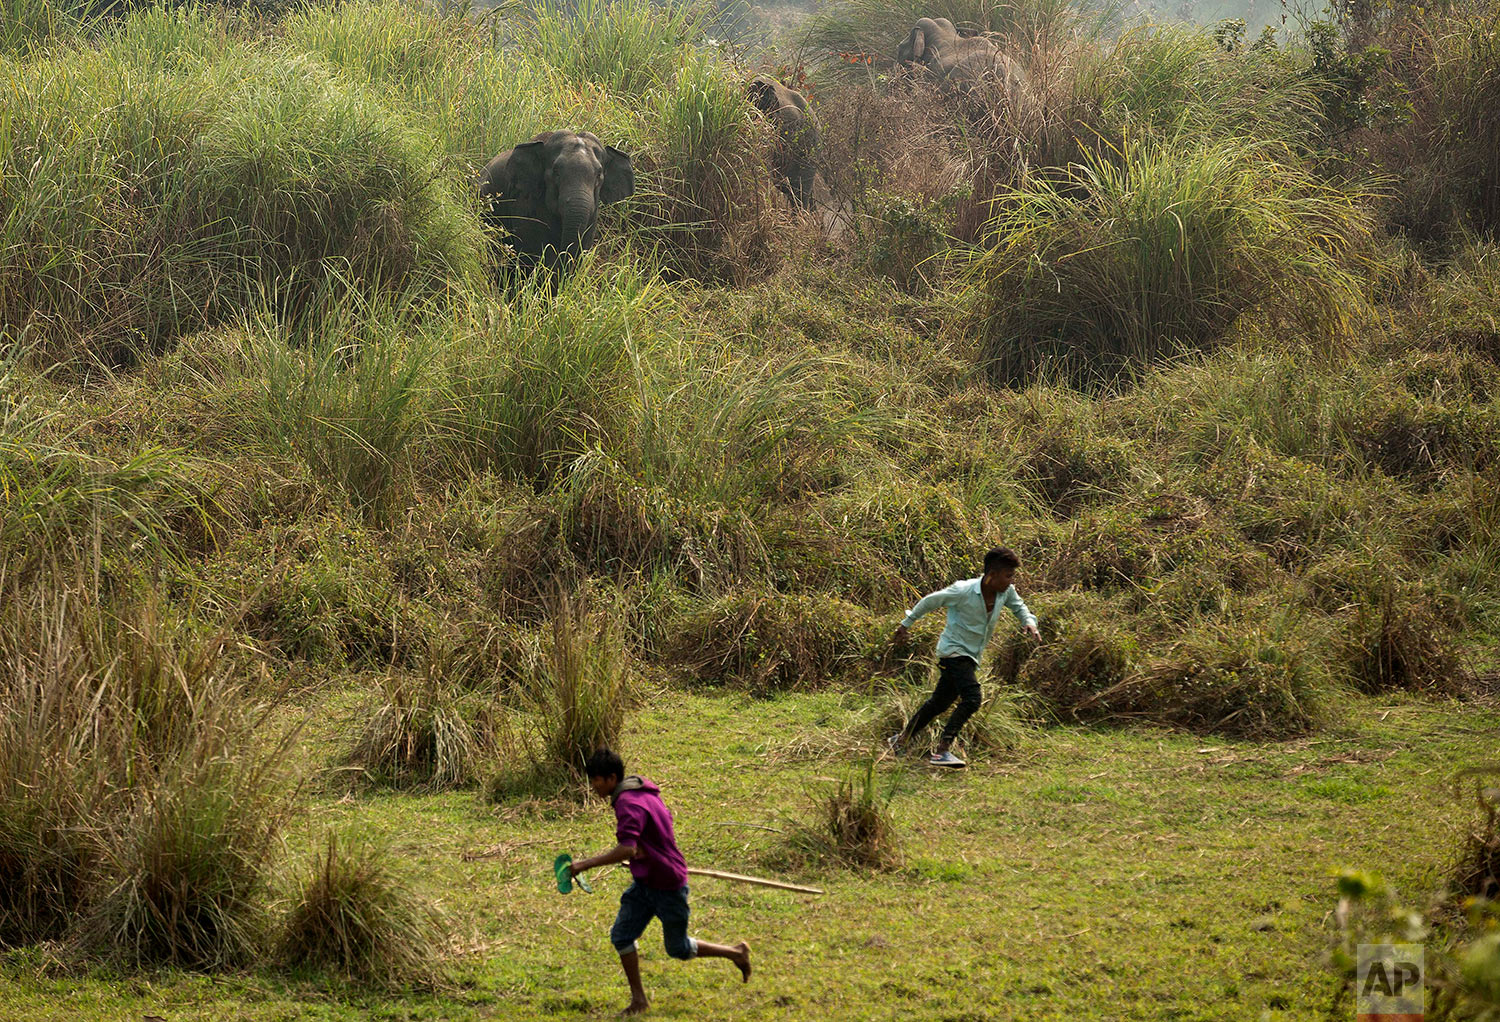 Wild elephants chase back Indian villagers who were trying to chase them away from their Misamari village on the outskirts of Gauhati, Assam state, India, Thursday, Feb. 9, 2017. Three wild elephants from nearby Amchang wildlife sanctuary entered the village in search of food Thursday. (AP Photo/Anupam Nath)